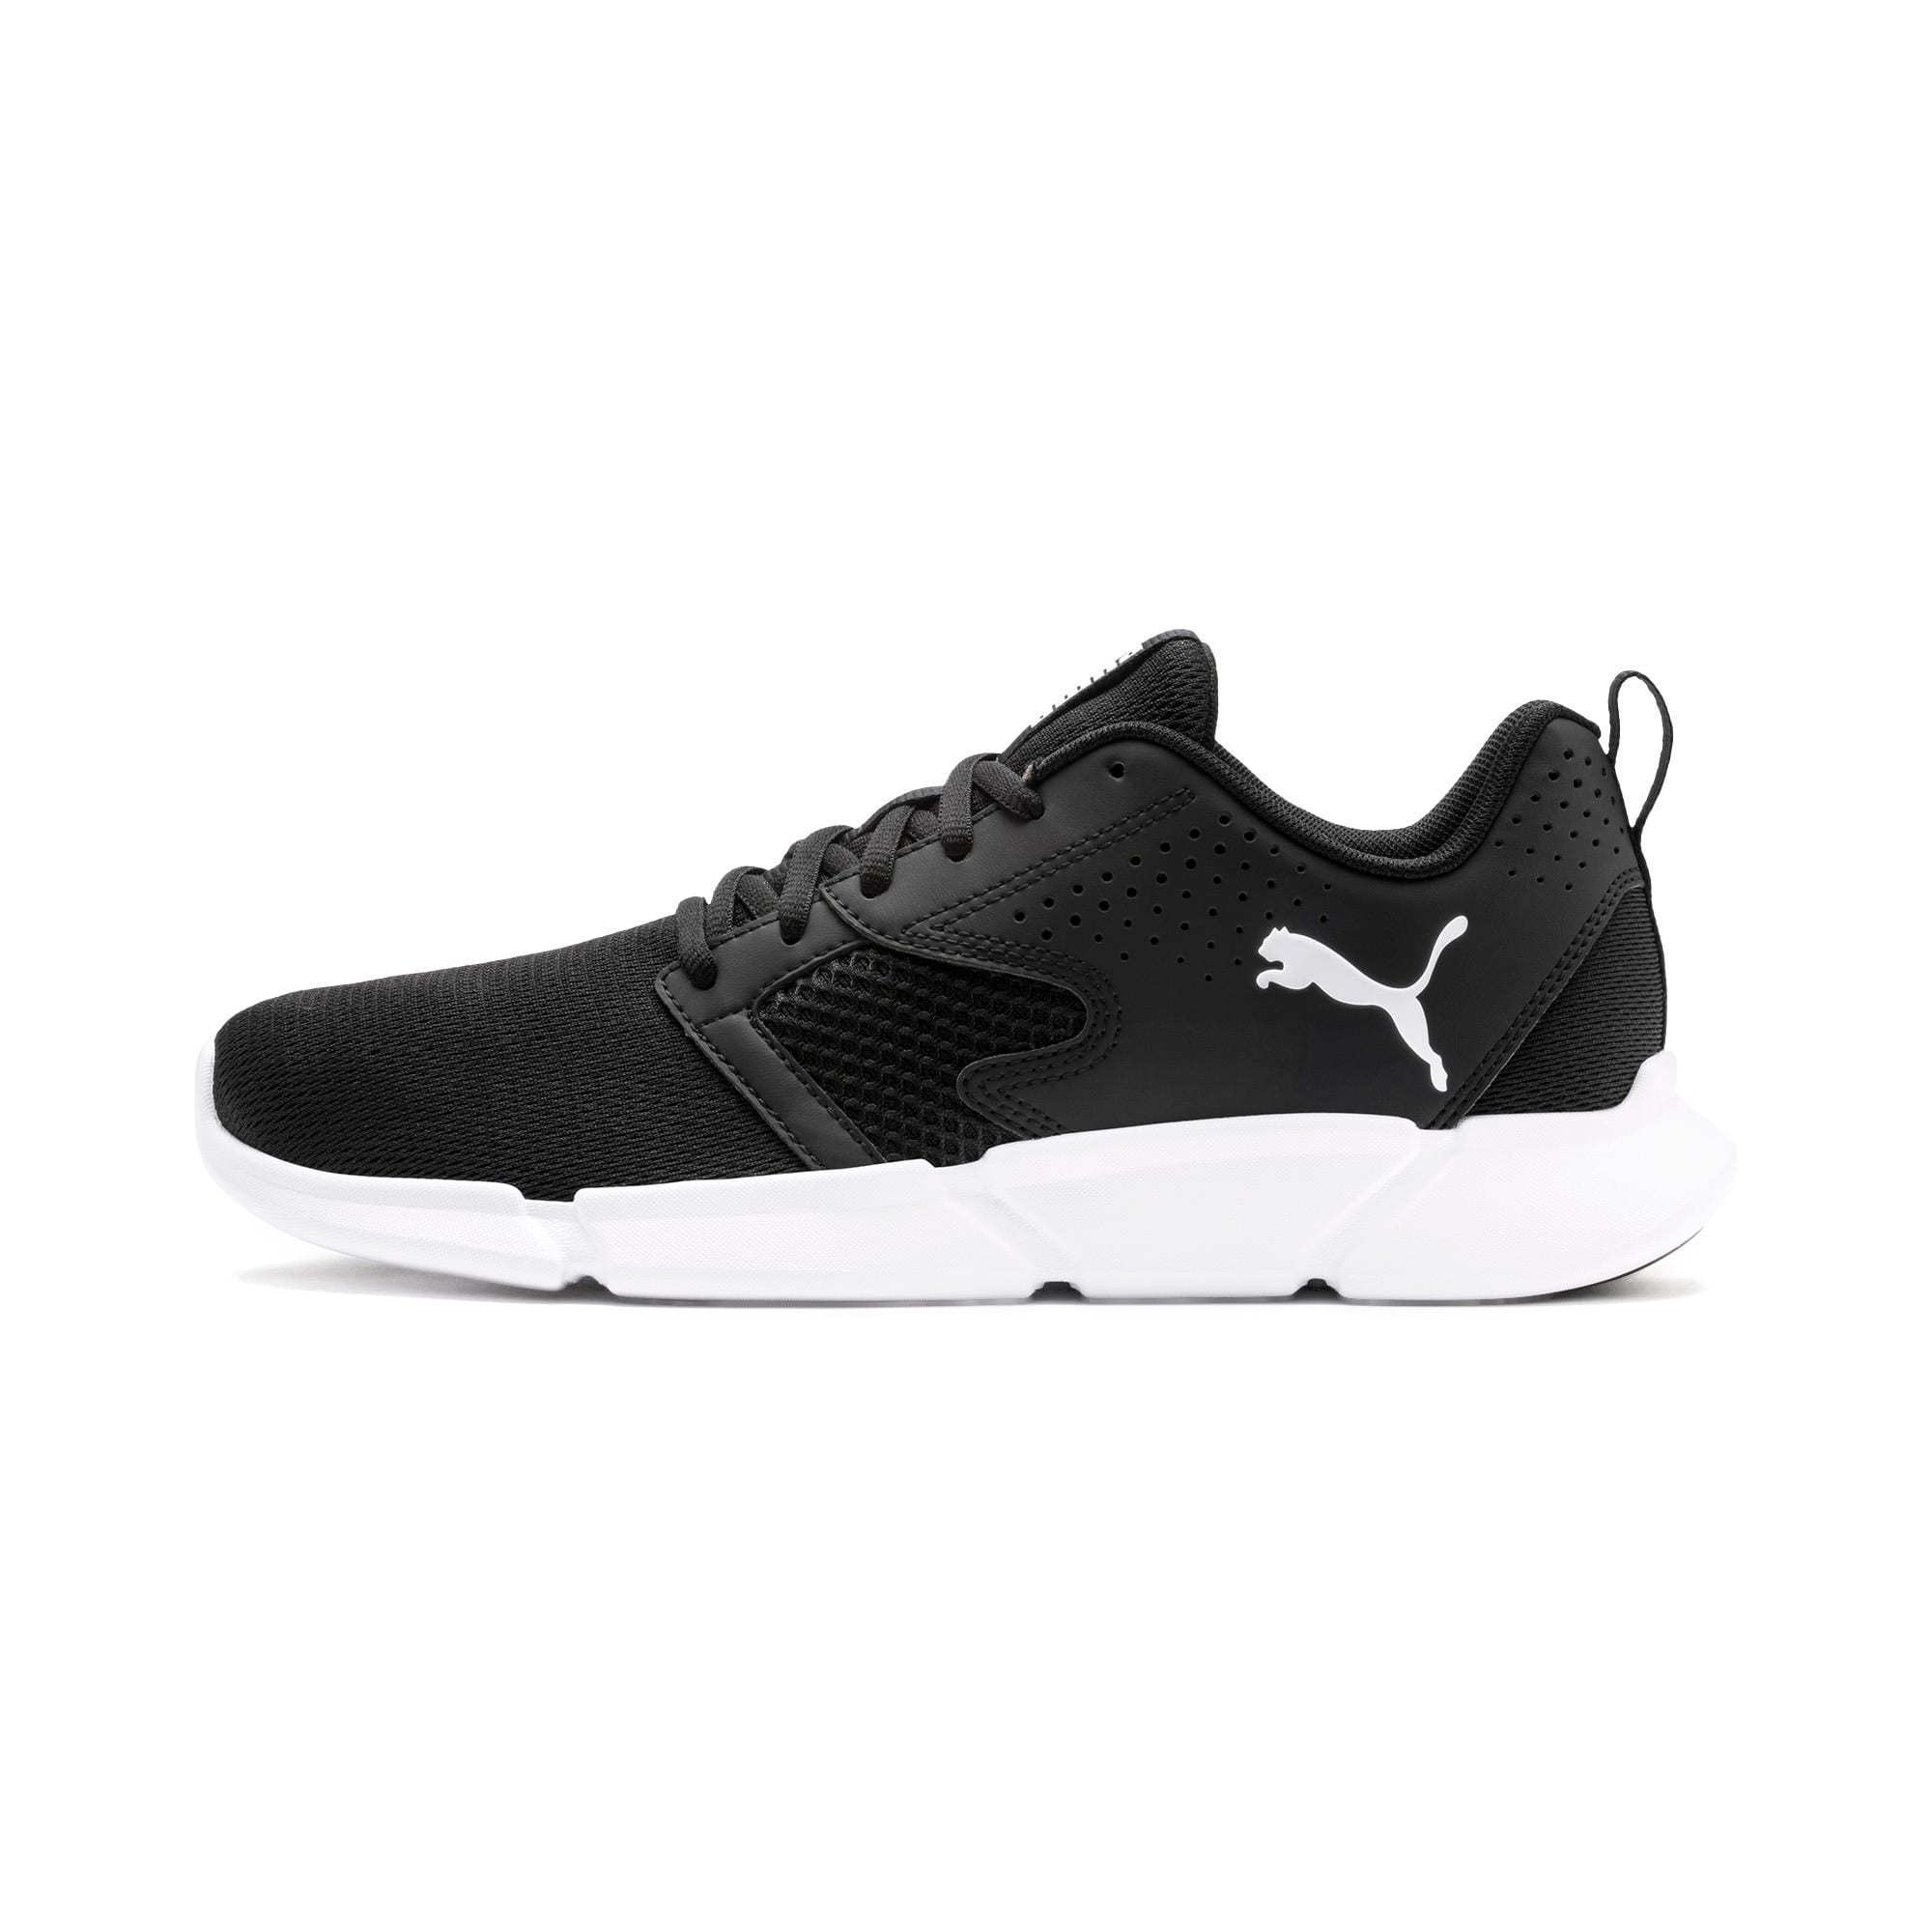 Thumbnail 1 of INTERFLEX Modern Sneakers, Puma Black-Puma White, medium